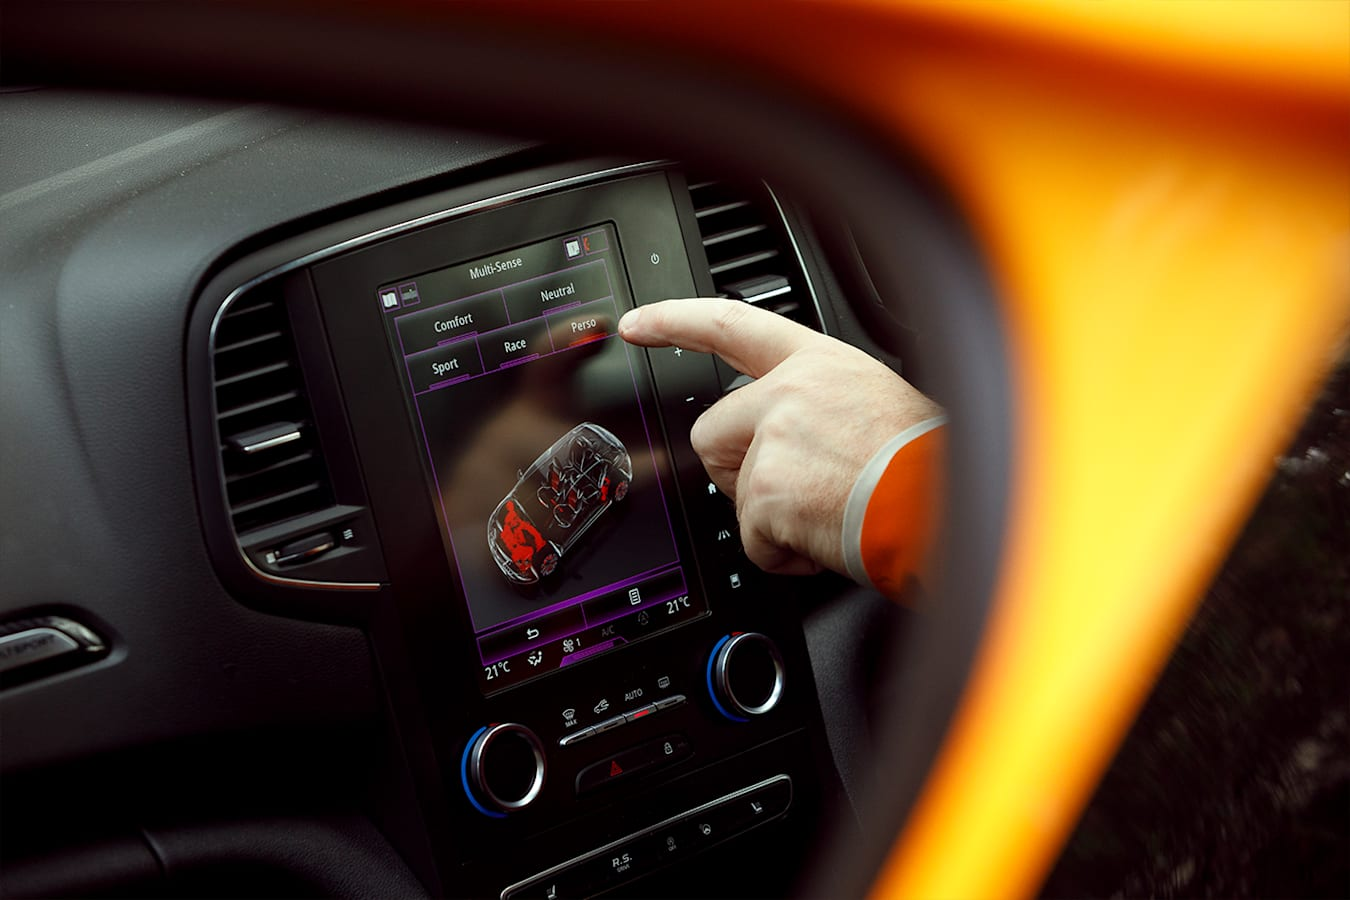 Renault Megane RS 280 Cup Infotainment Jpg